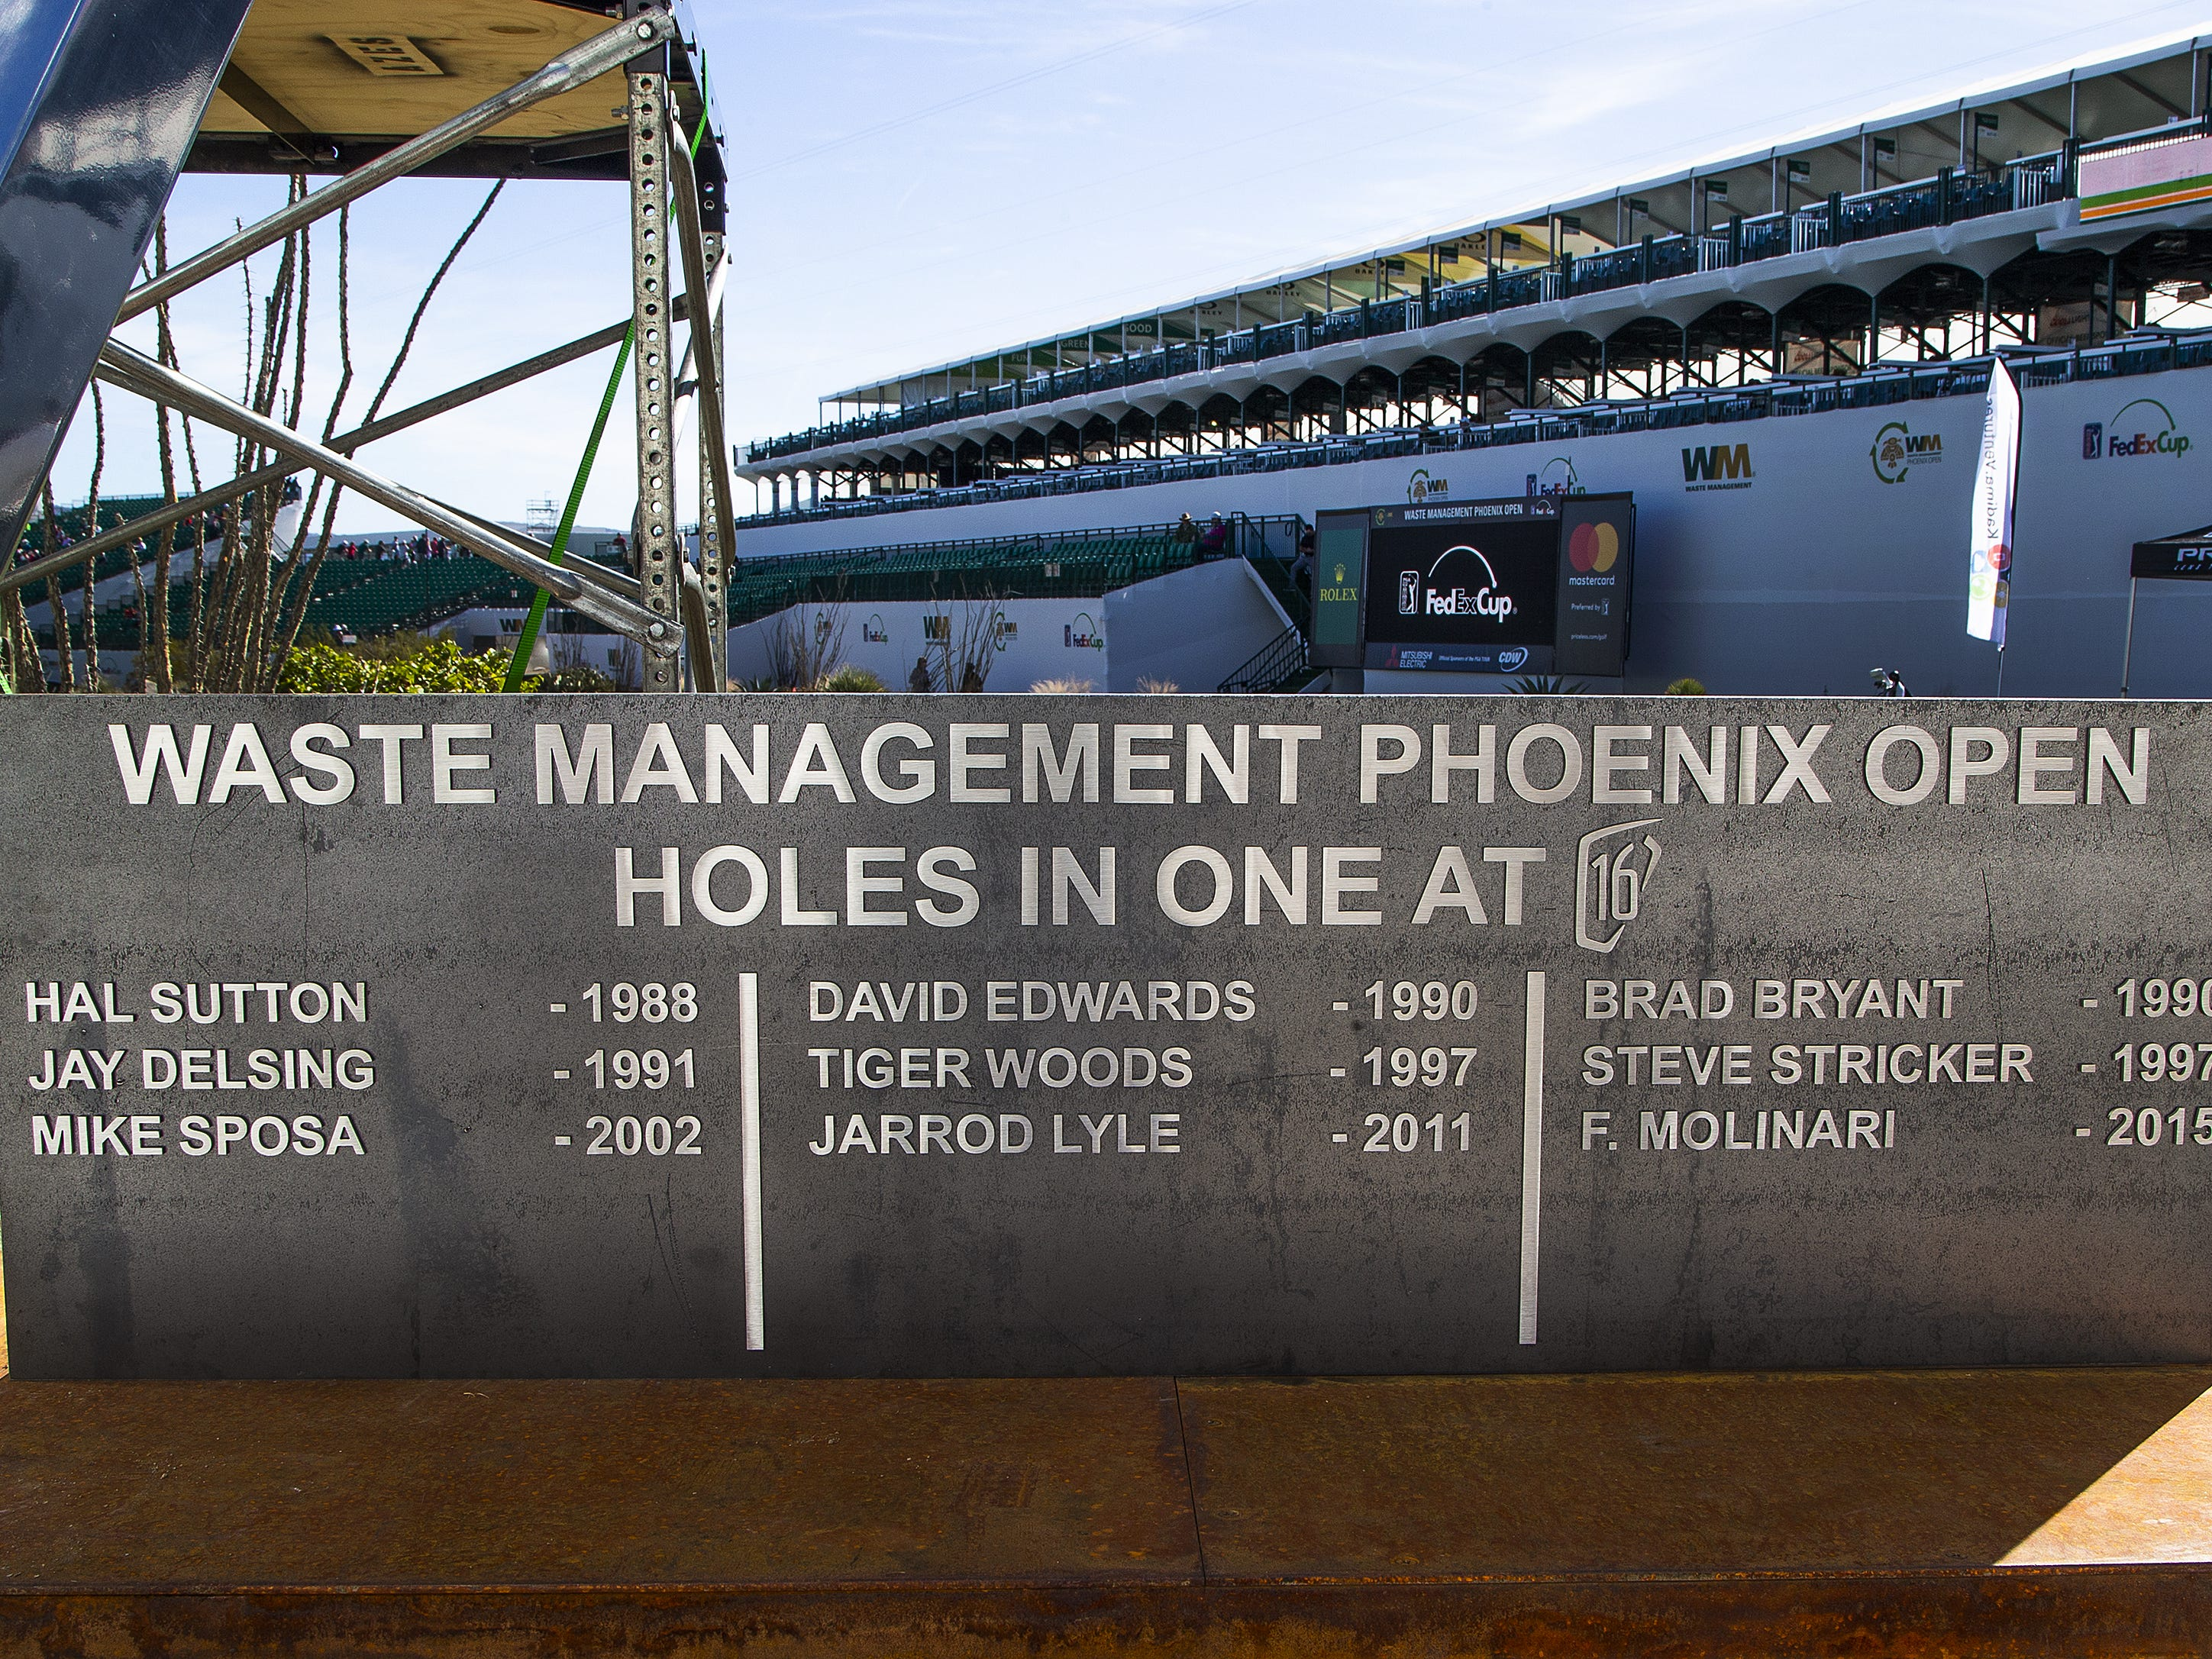 A plaque lists all the golfers who have hit a hole in one on the 16th hole at the Waste Management Phoenix Open at the TPC Scottsdale, Monday, January 28, 2019.